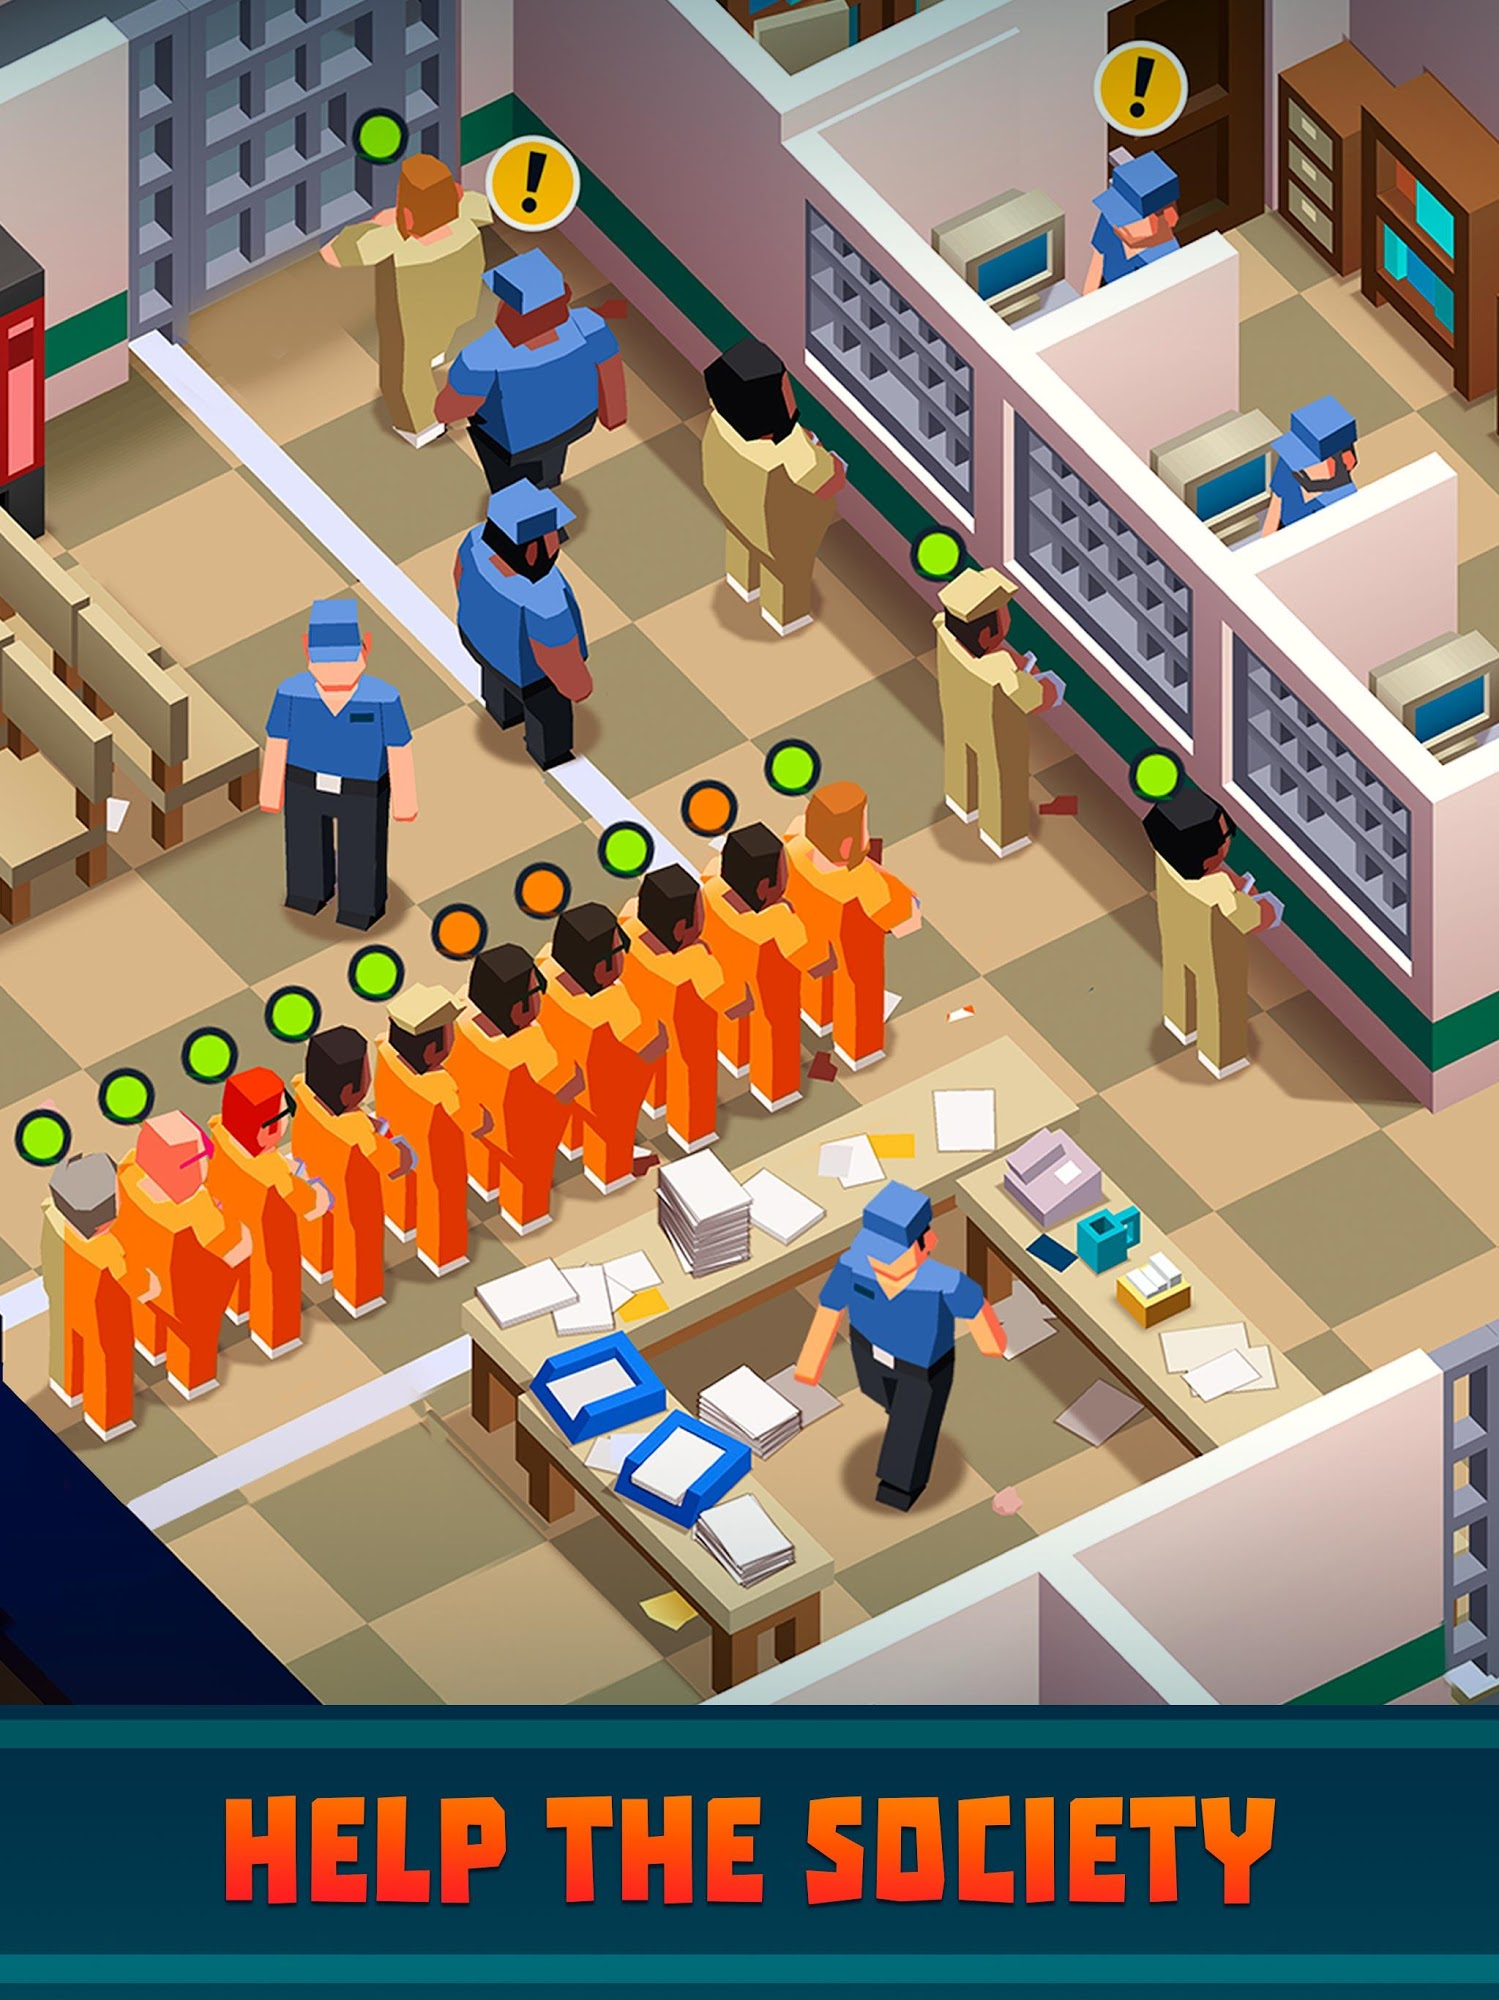 Prison Empire Tycoon - Idle Game screenshot 1